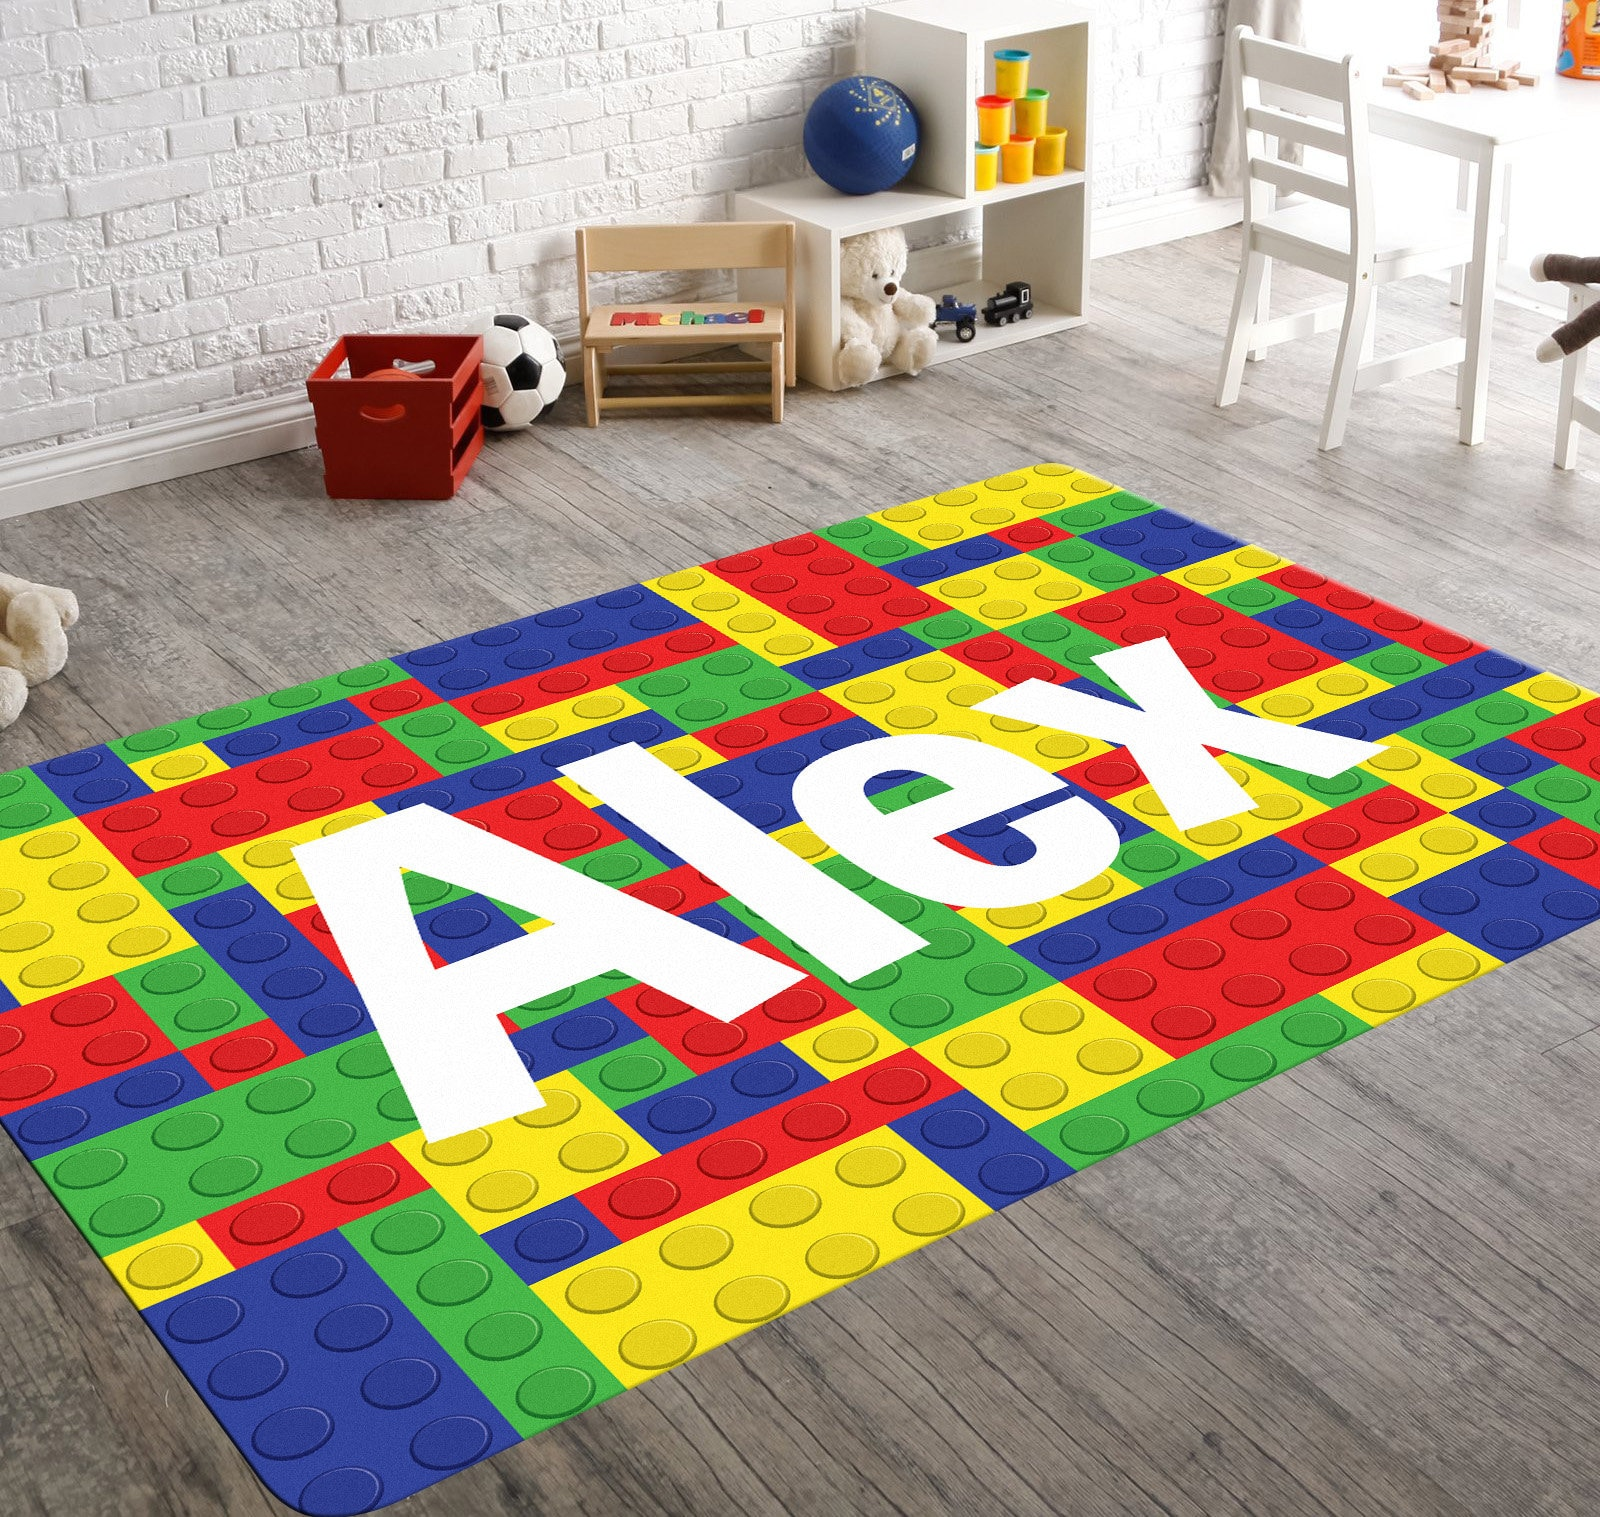 Lego Rug Lego Nursery Nursery Rug Game Room Rug Kids Rugs